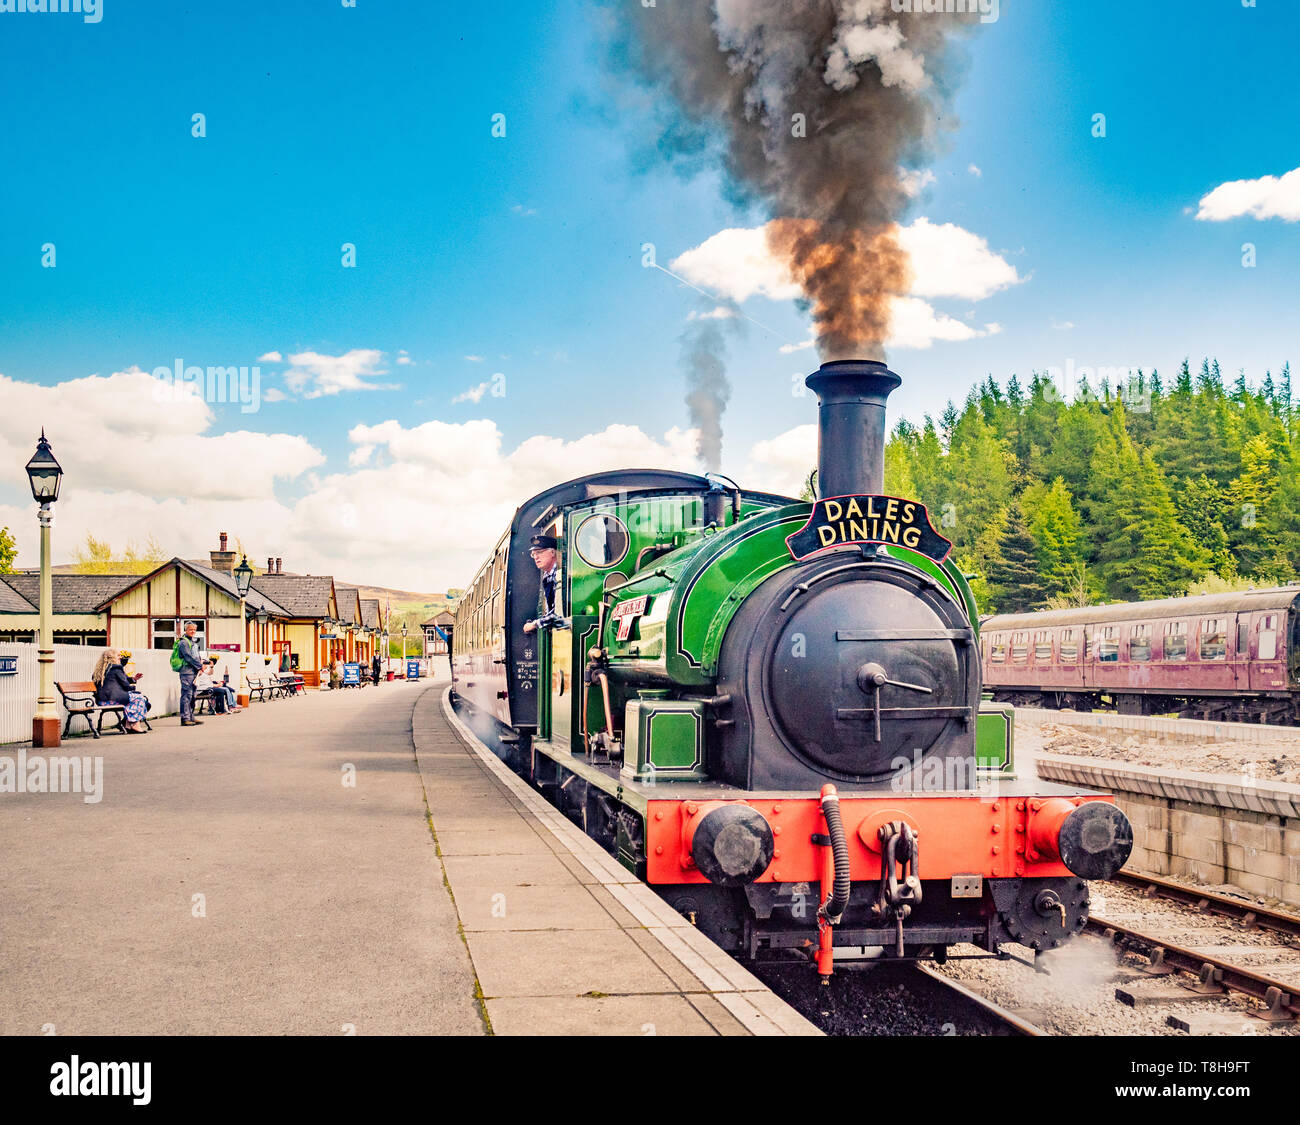 Sir Robert Alpine and Sons, Engine No. 88. Embsay and Bolton steam railway. Bolton Station, Yorkshire Dales, UK. Stock Photo